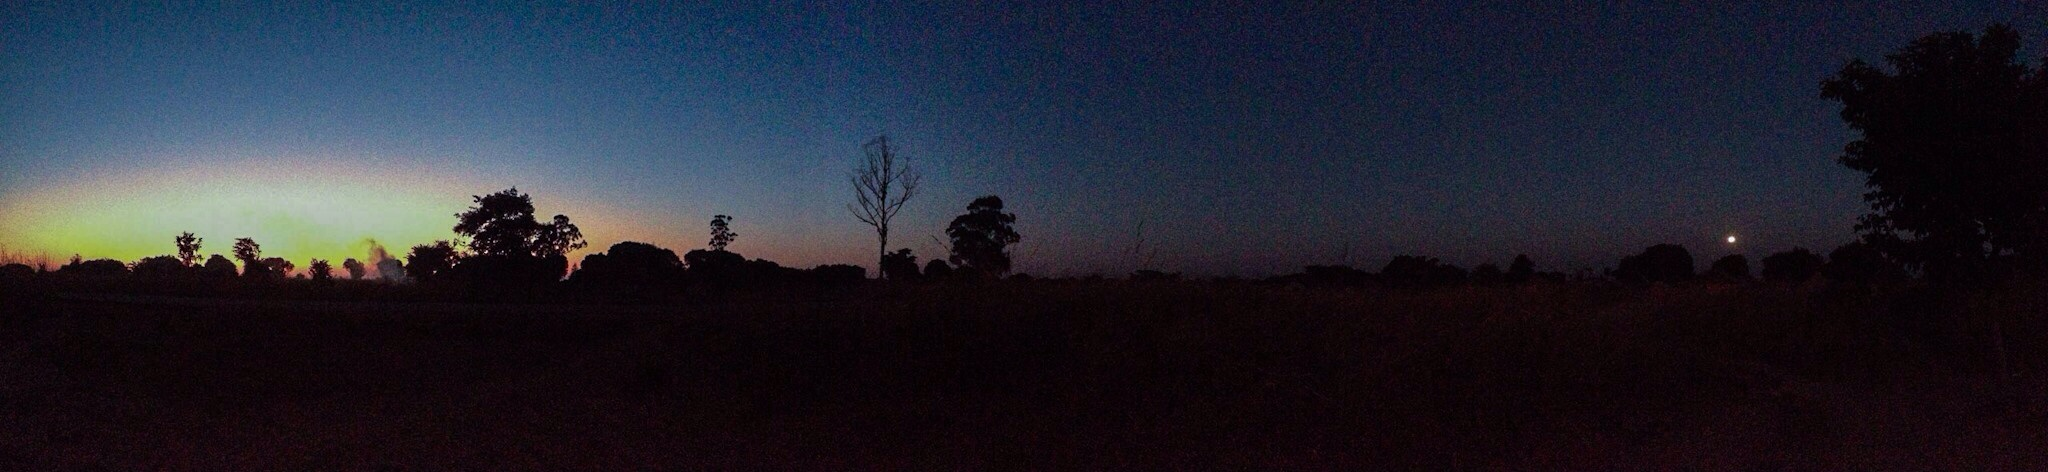 As the sun rises, we sweep the yard. Dust lifts into the sky attempting to hold up a full moon's departure.